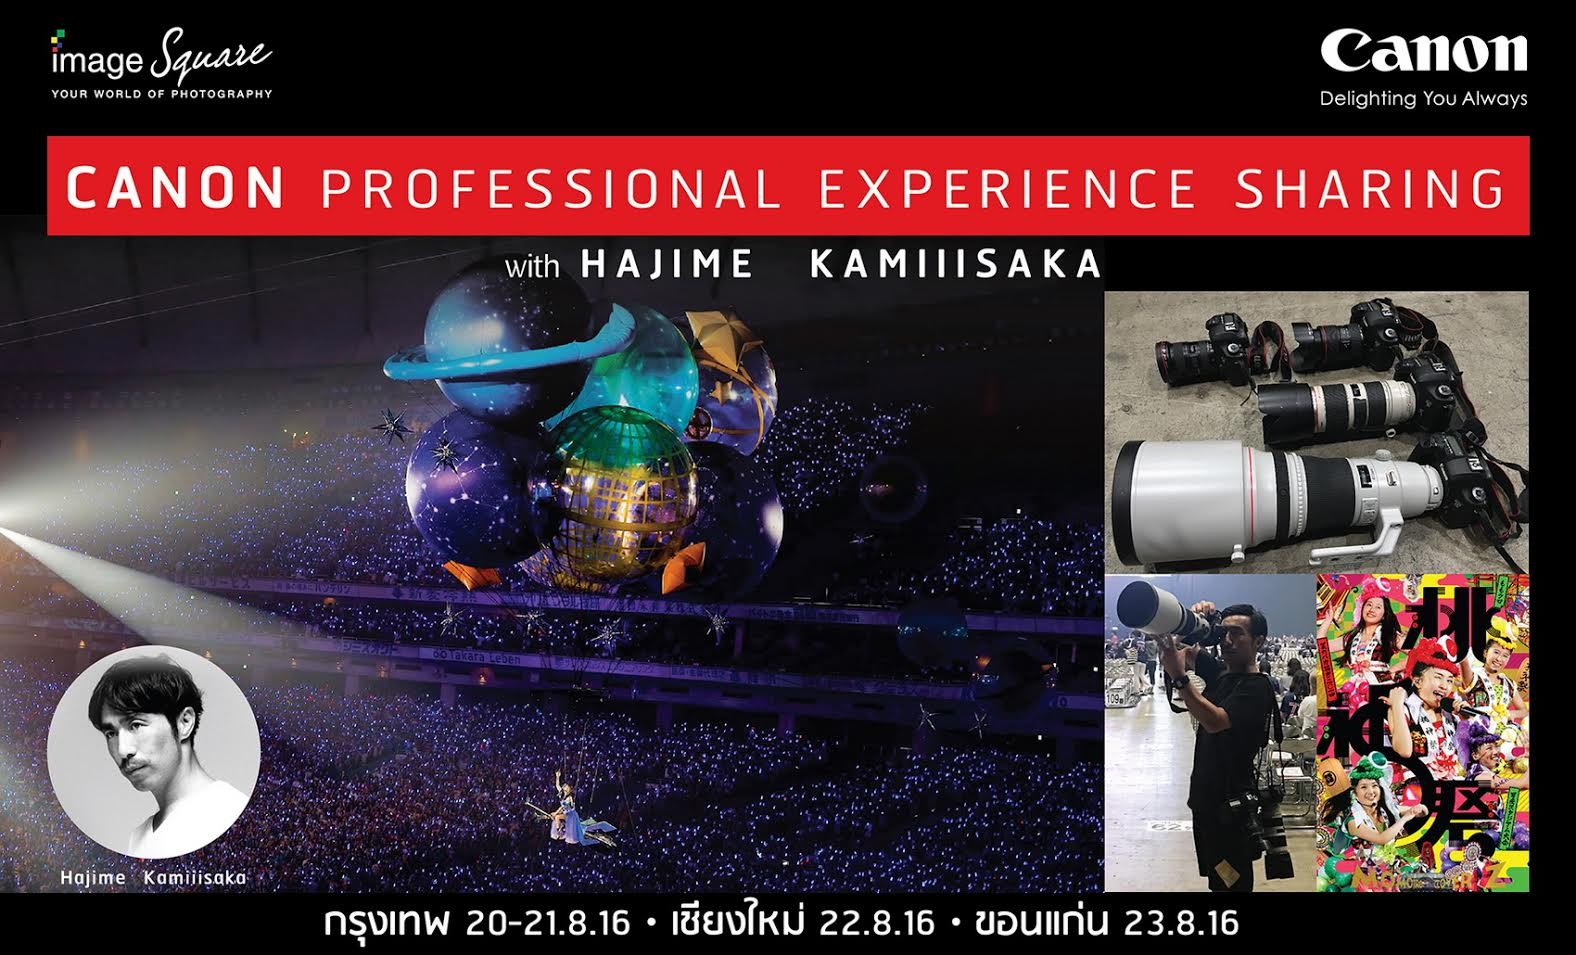 Canon Professional Photography Workshop